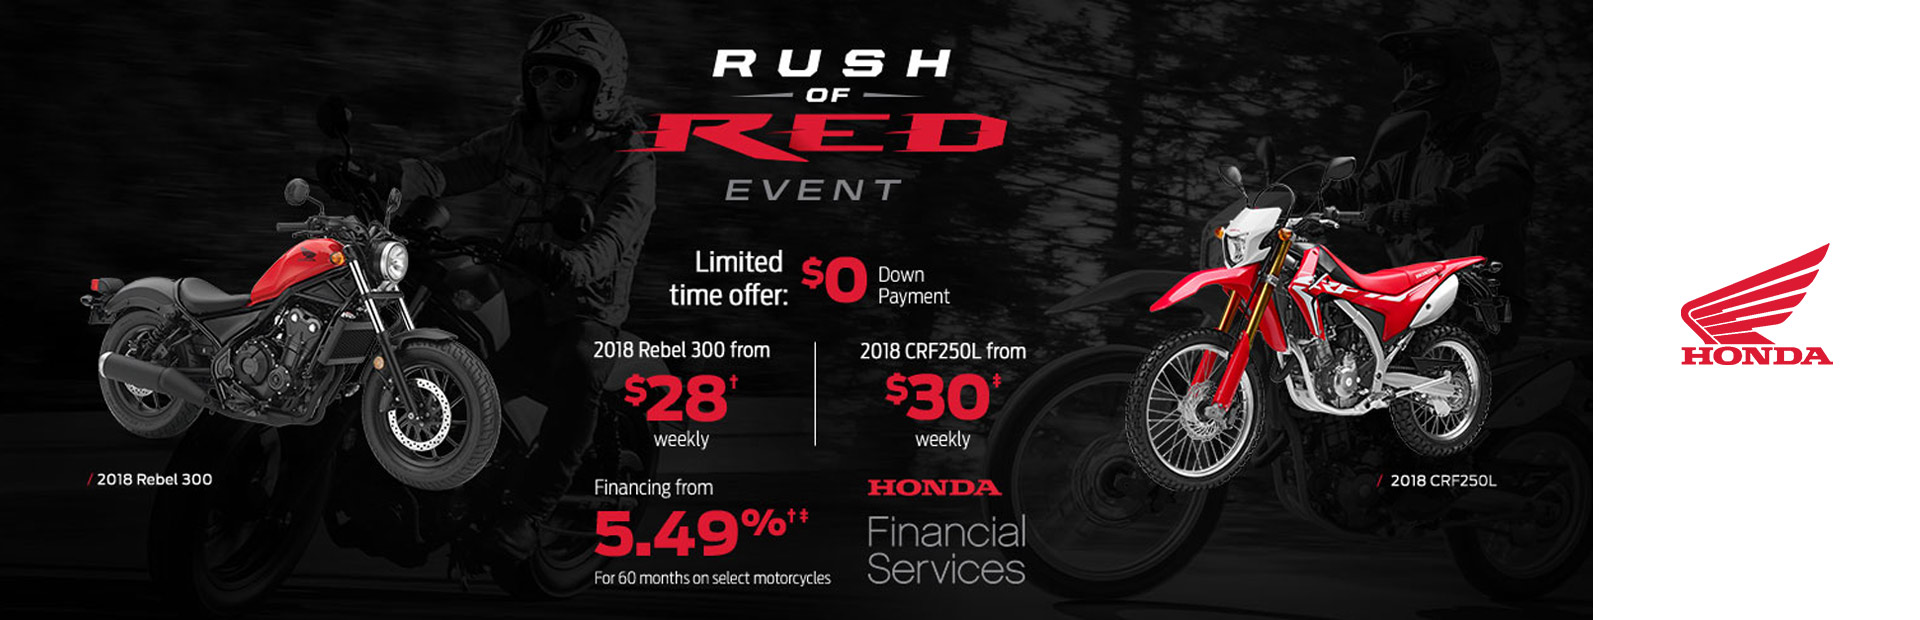 Honda: Rush of Red Event